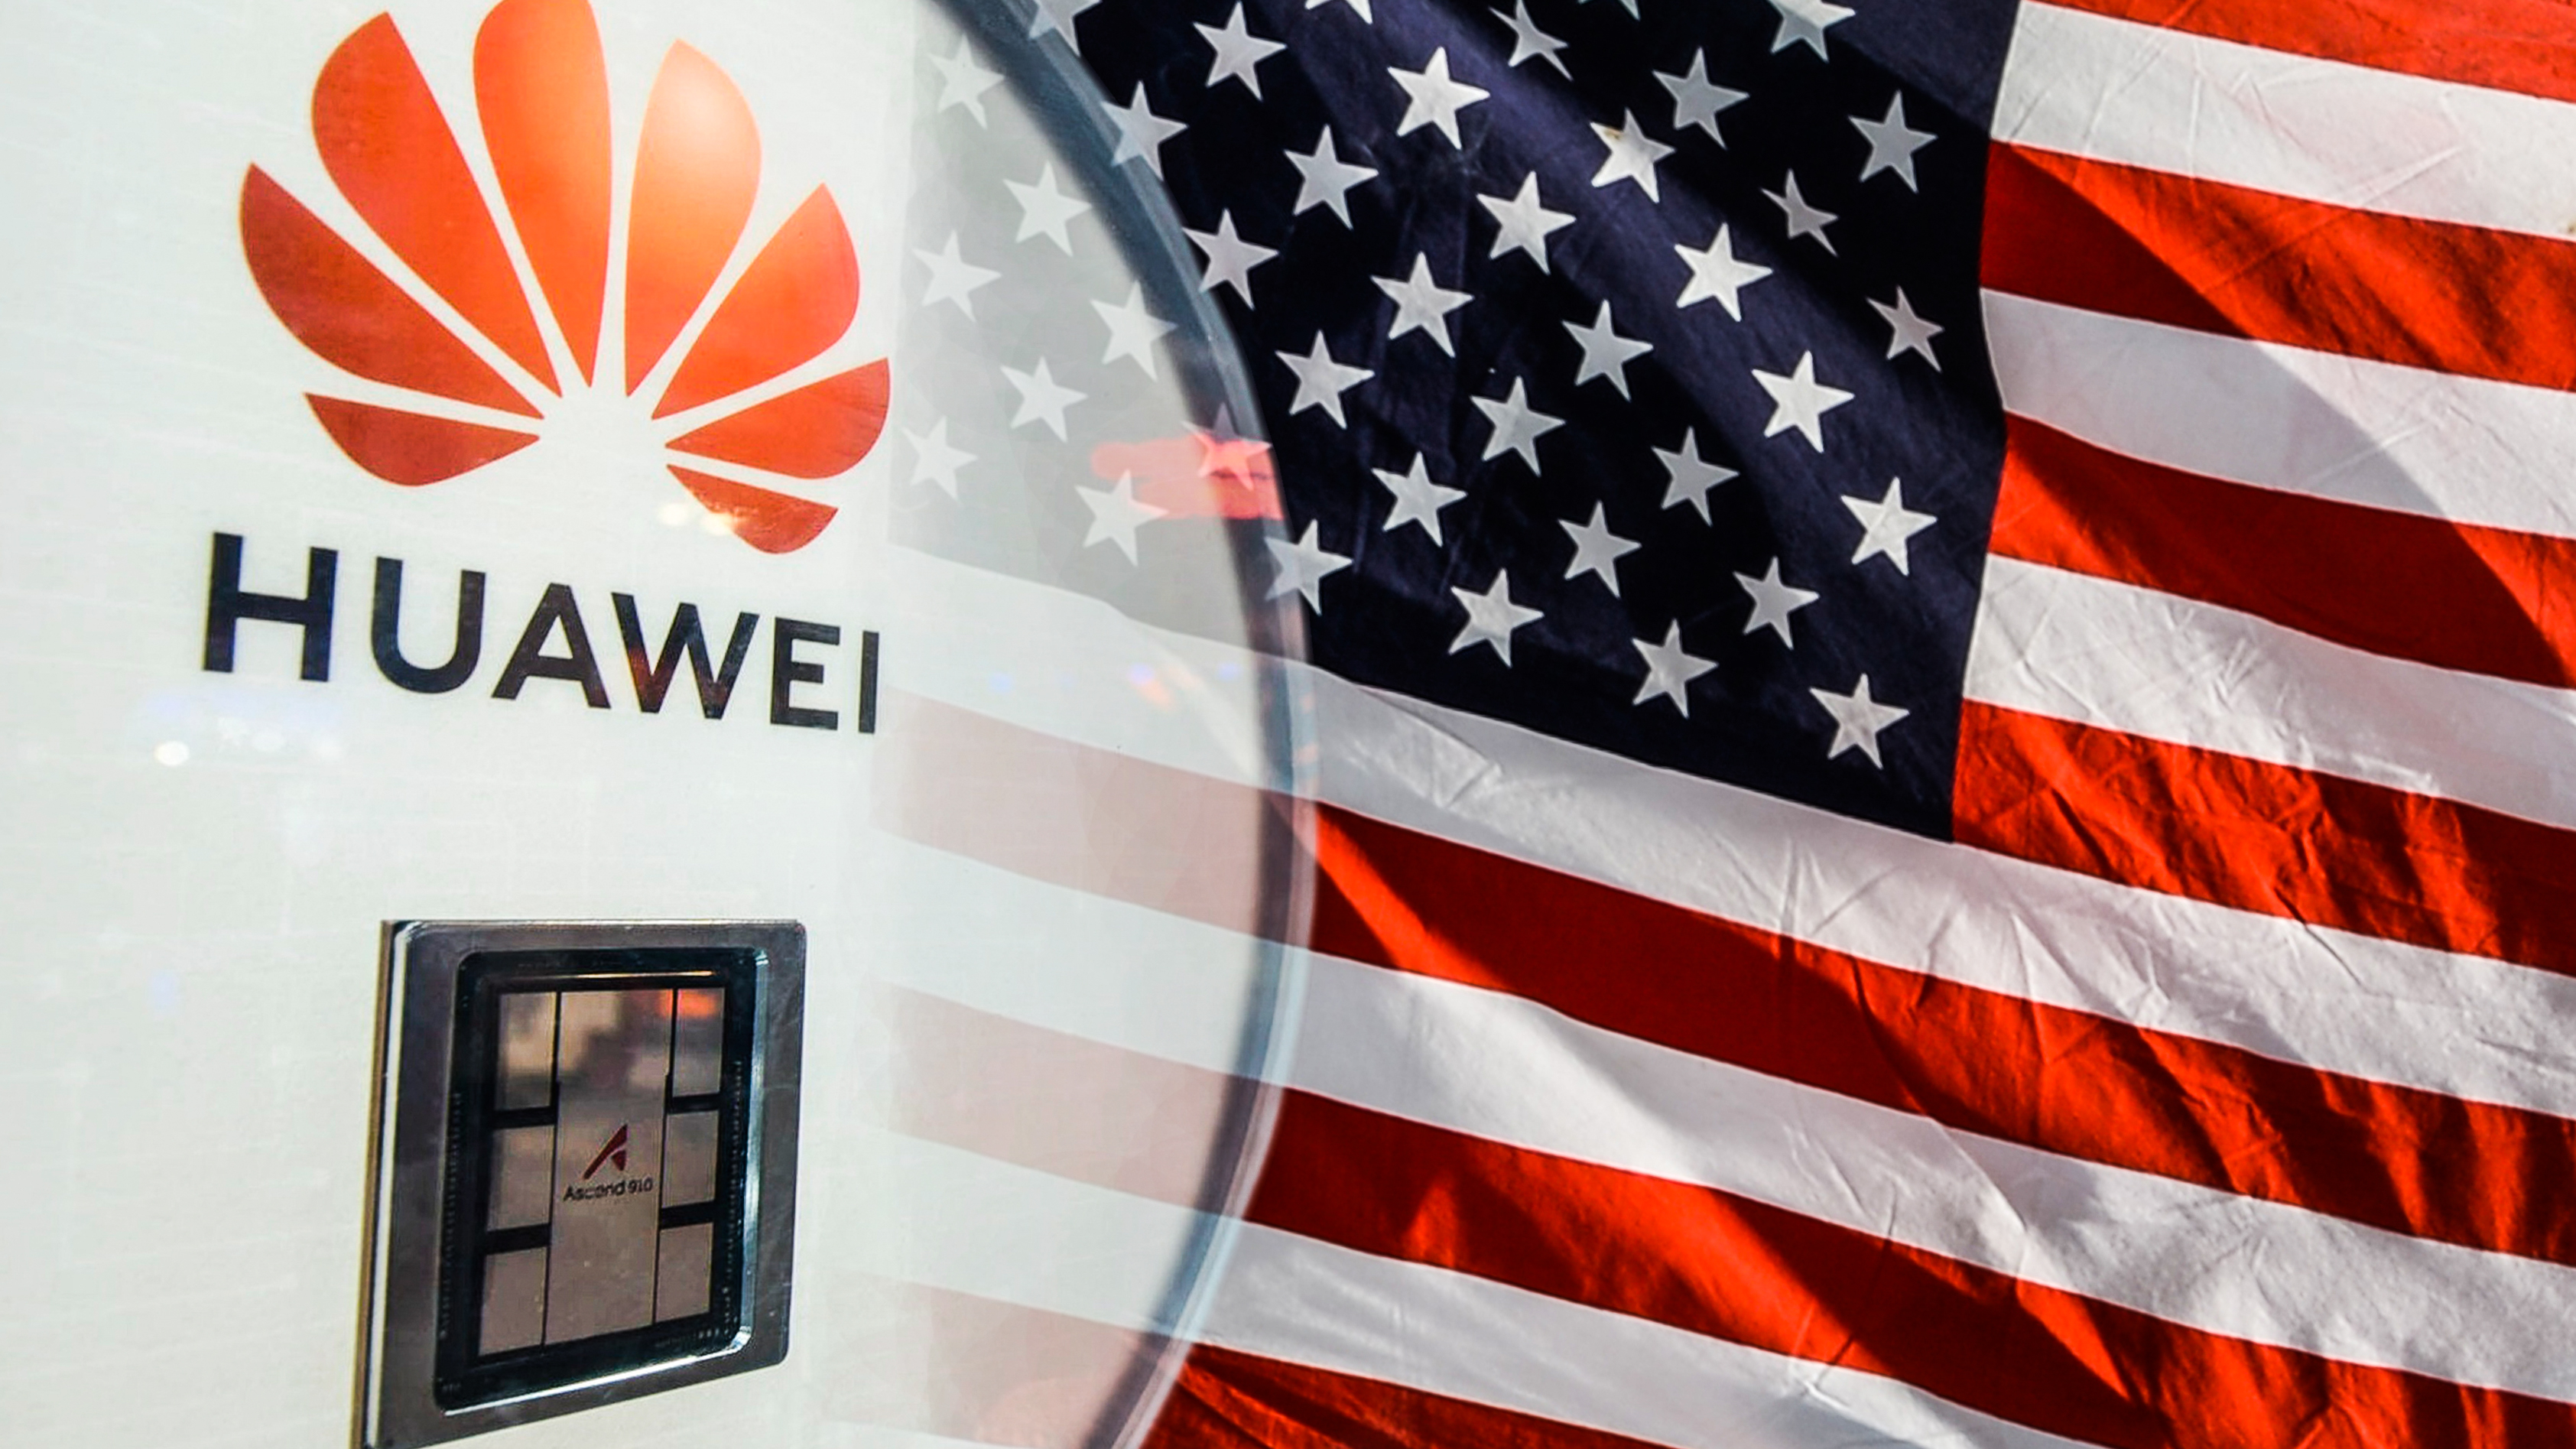 nikkei.com - Staff Writer - Huawei builds up 2-year reserve of 'most important' US chips